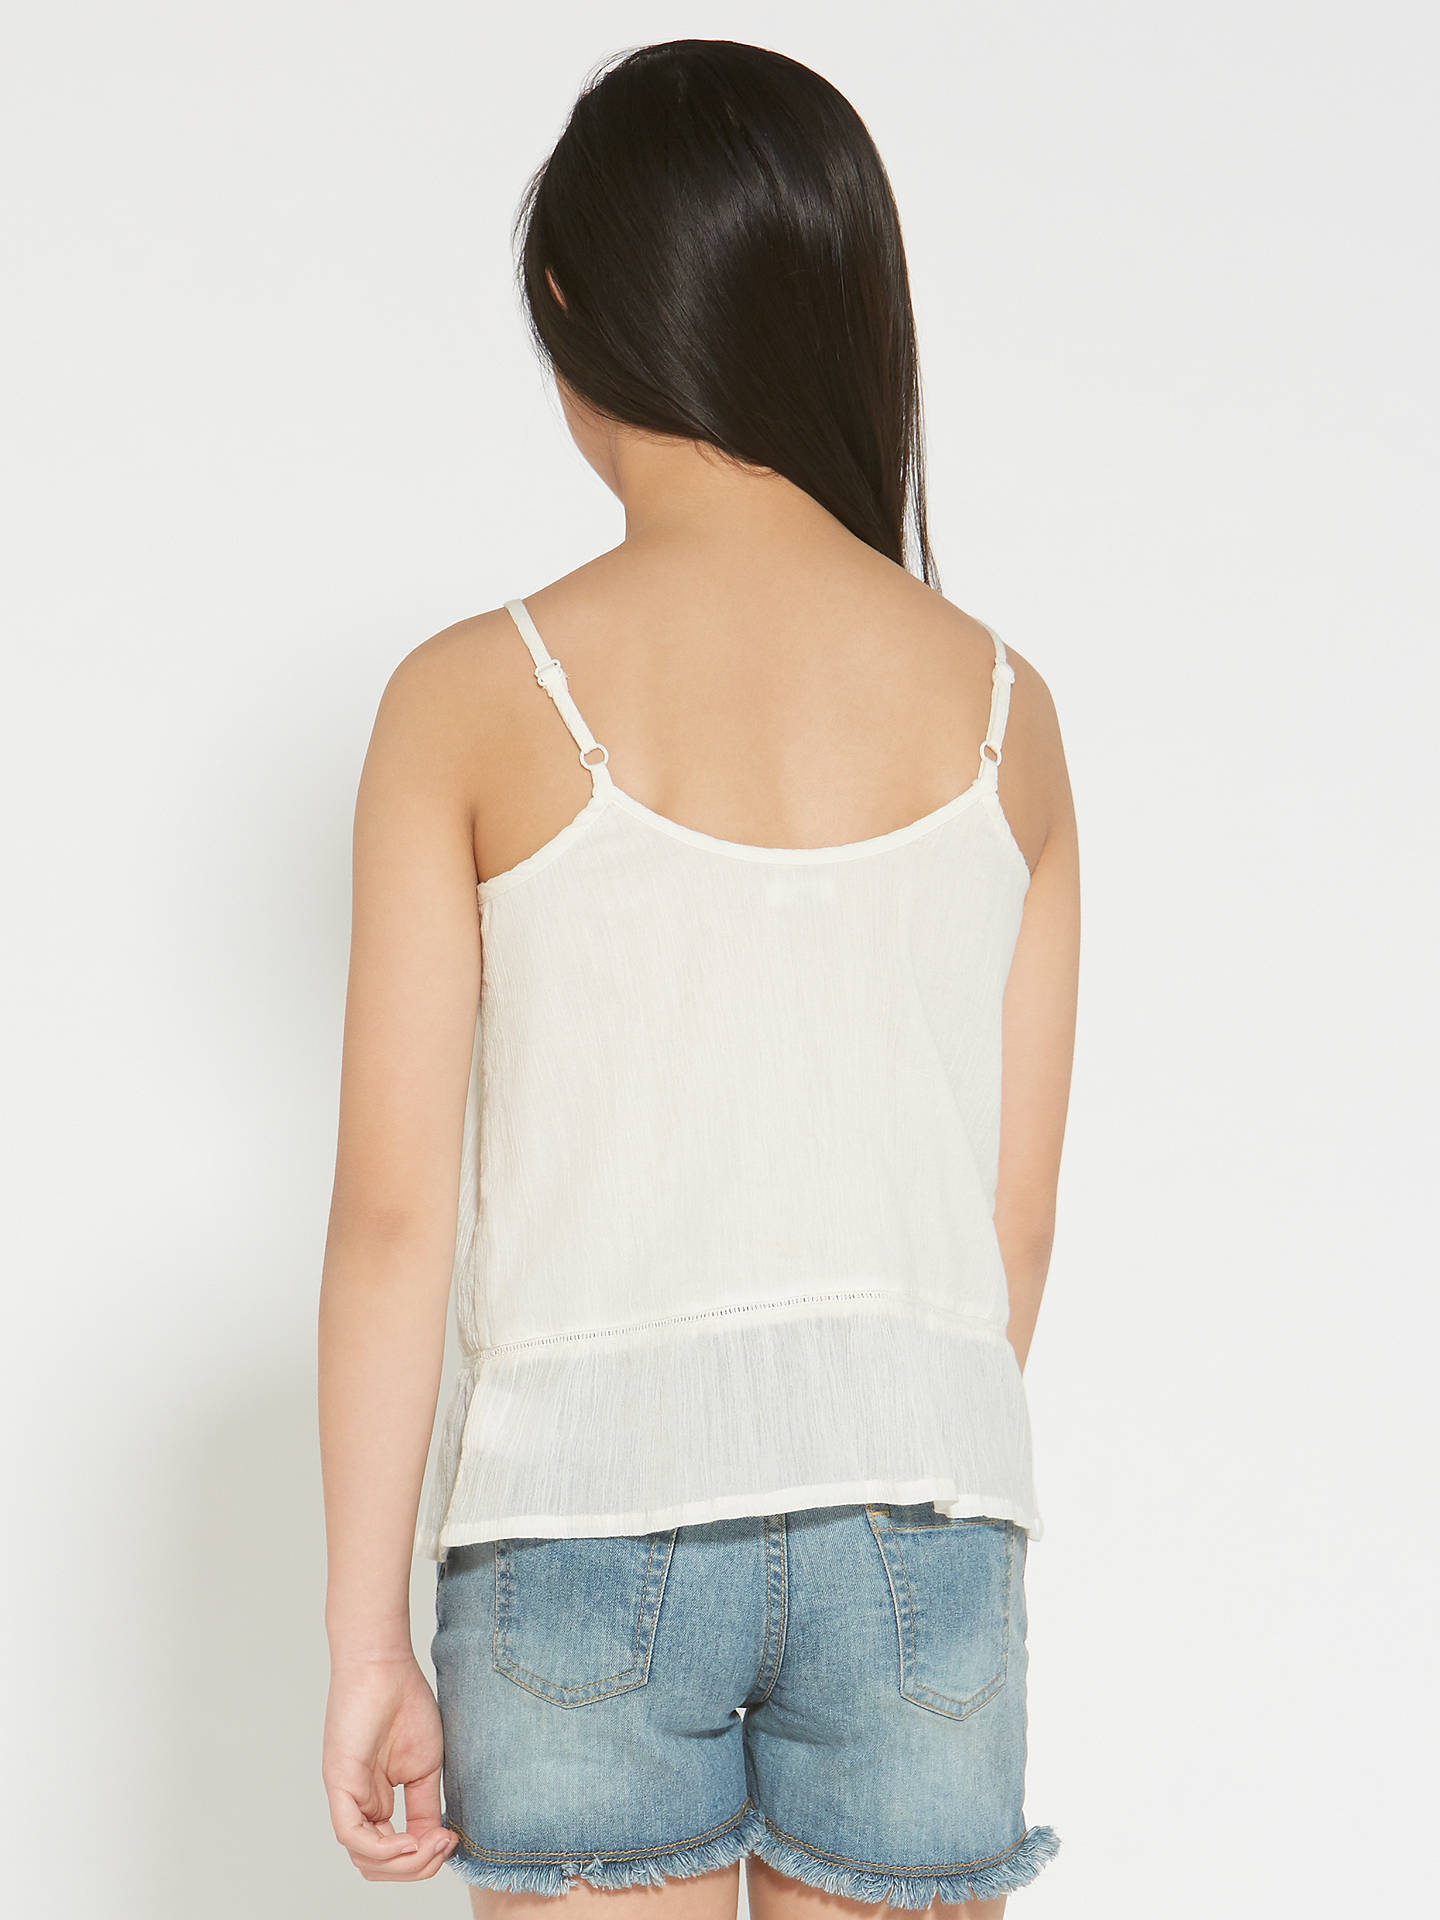 BuyJohn Lewis & Partners Girls' Embroidered Woven Camisole Top, White, 12 years Online at johnlewis.com